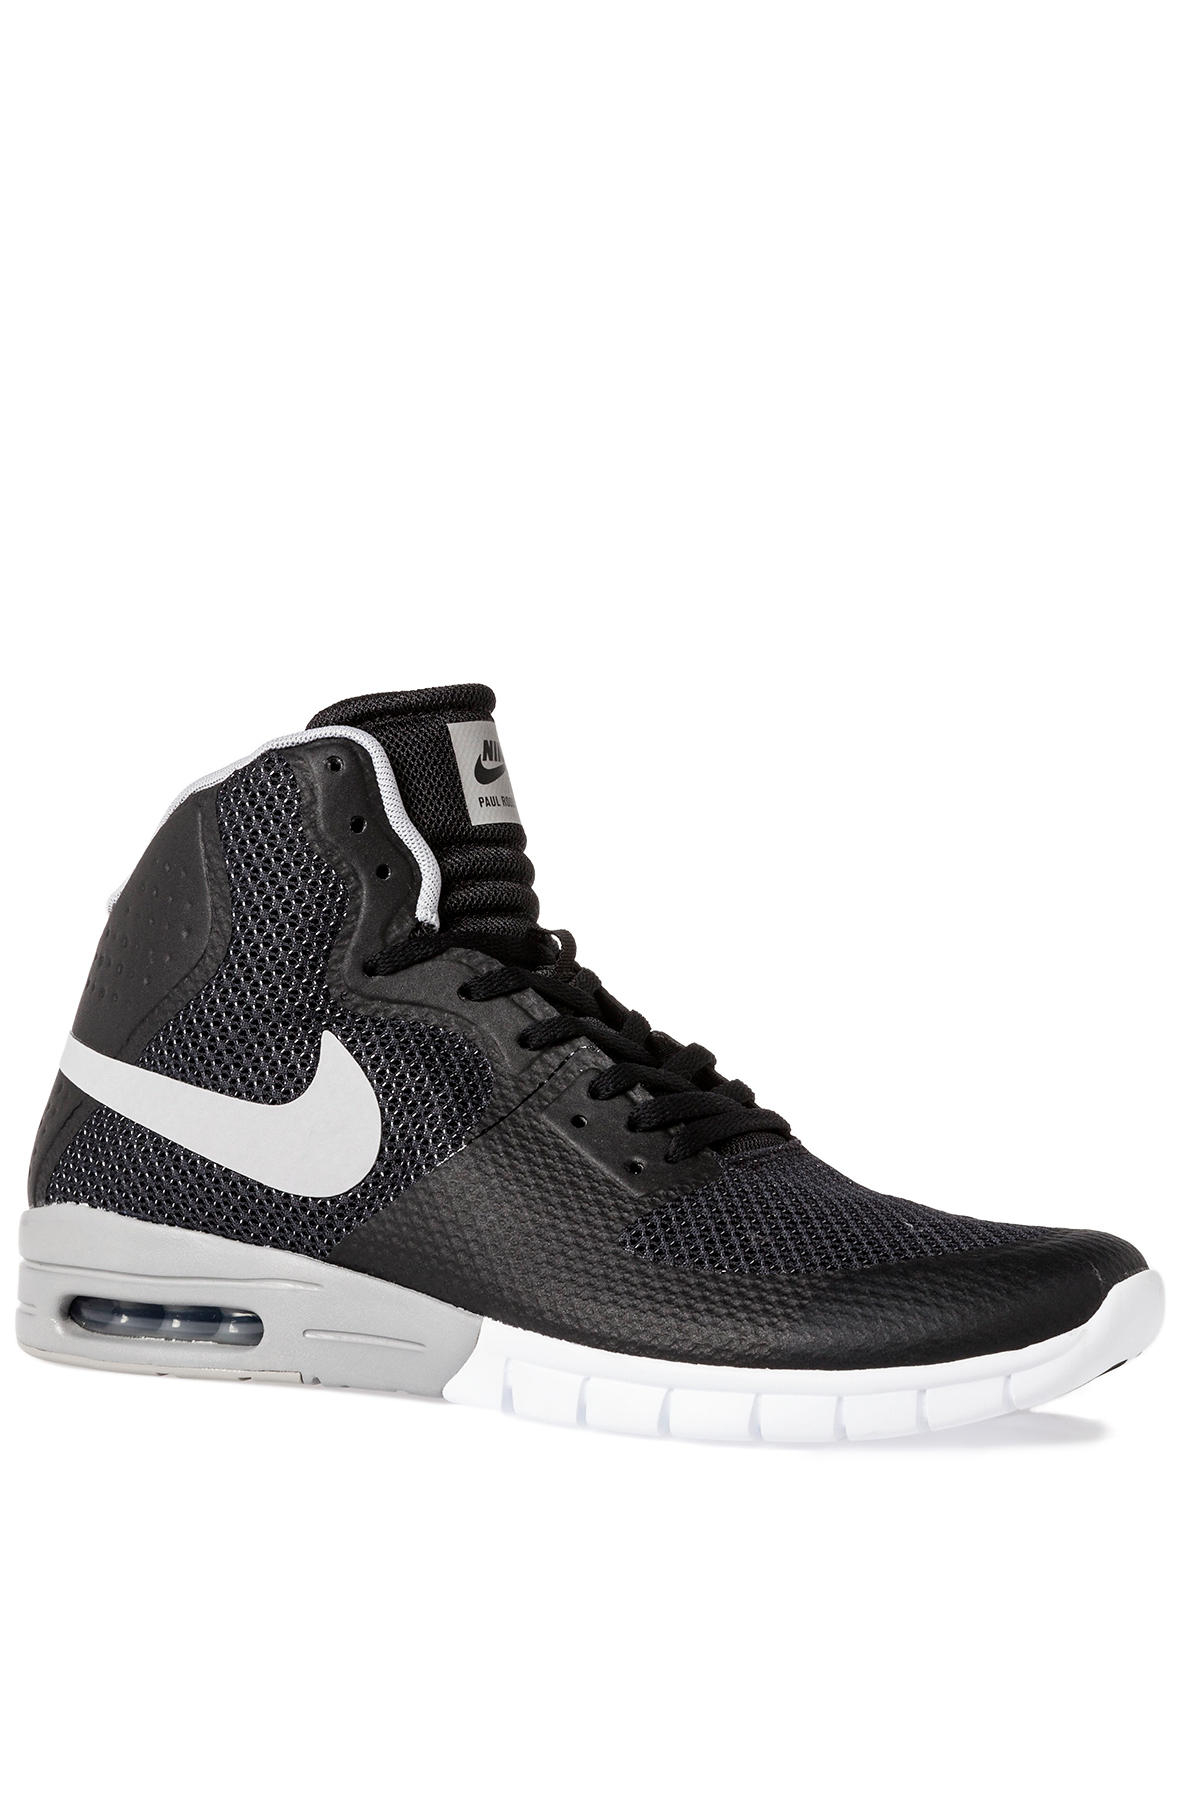 77d6d2cd9f5 Lyst - Nike The P-rod 7 Hyperfuse Max in Black for Men